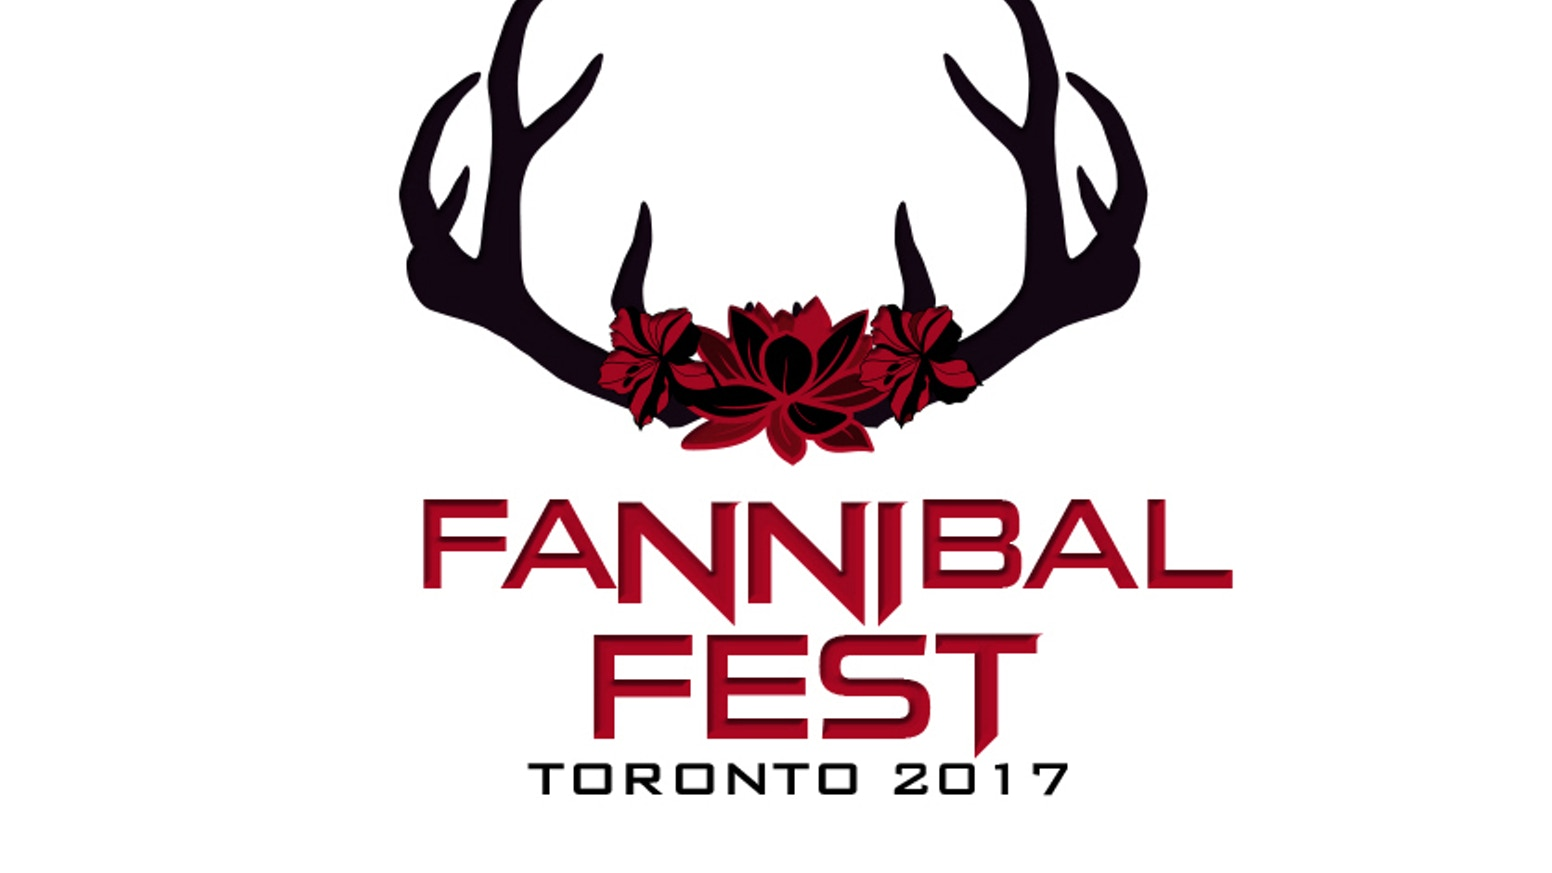 A Hannibal TV Show Fan Convention and Art Collective